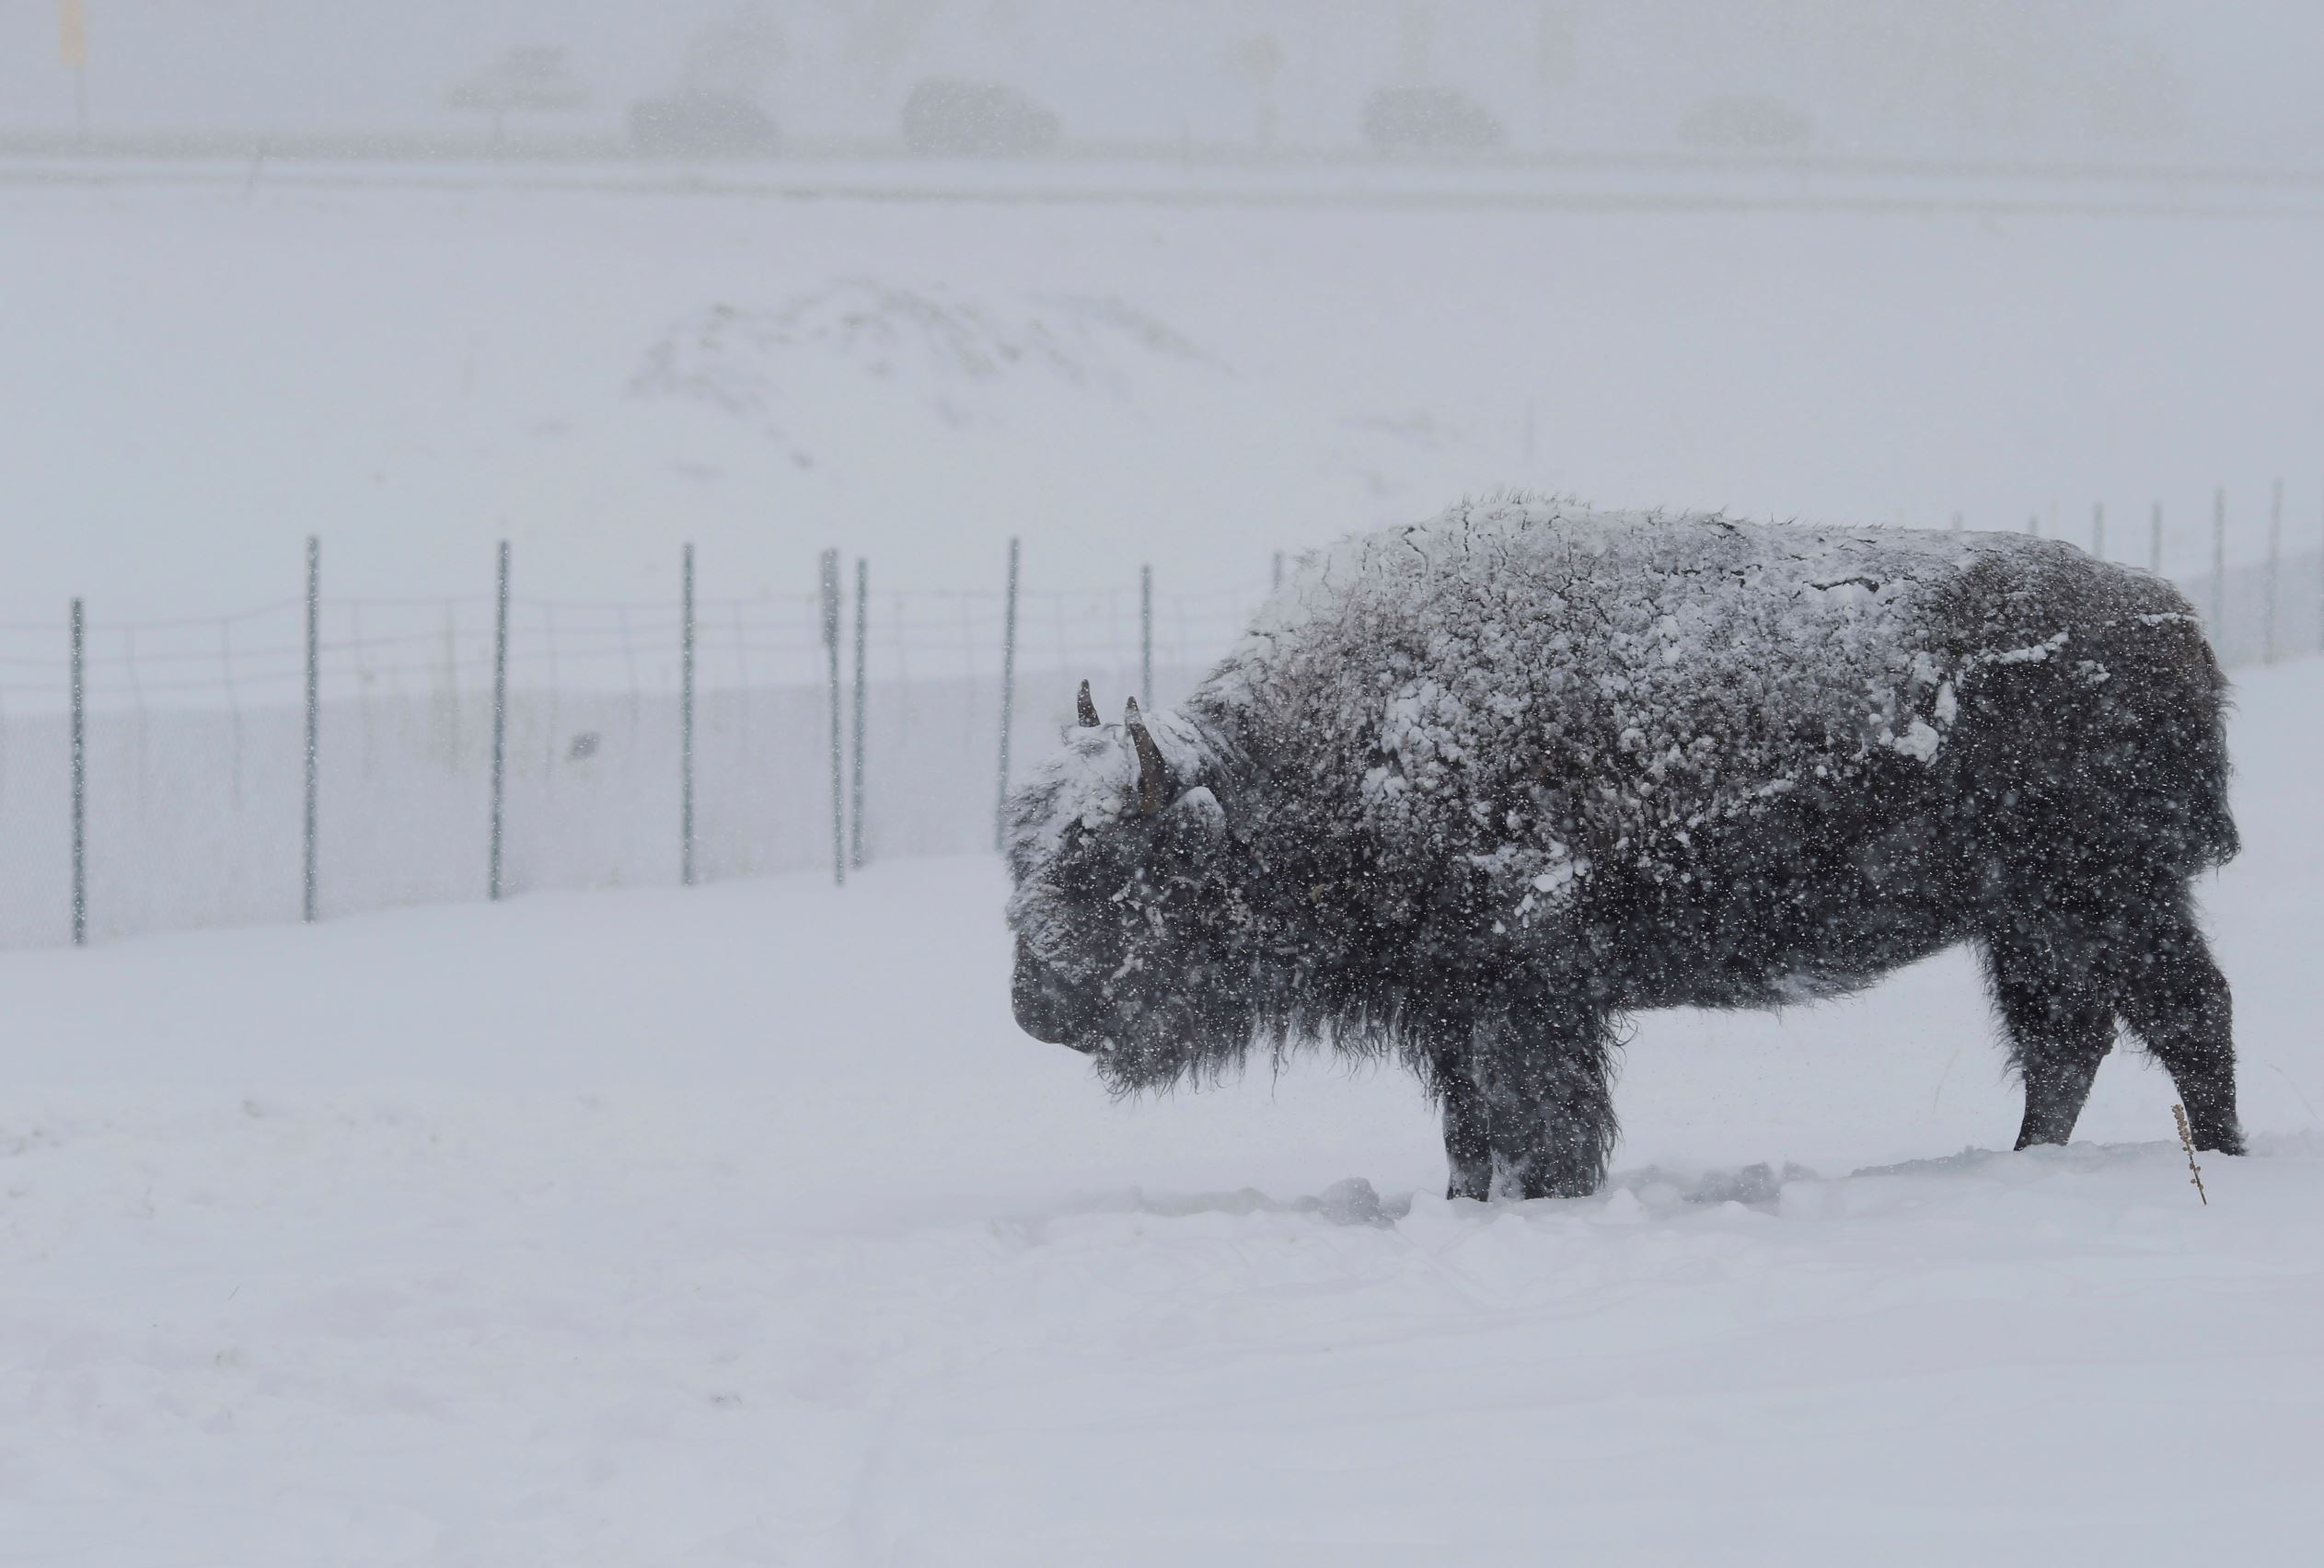 Слайд 38 из 86: A lone bison is blanketed by snow as the animal stands at the buffalo overlook along Interstate 70 as a severe spring storm packing high winds and heavy, wet snow sweeps over the intermountain West Saturday, April 16, 2016, near Evergreen, Colo. While th